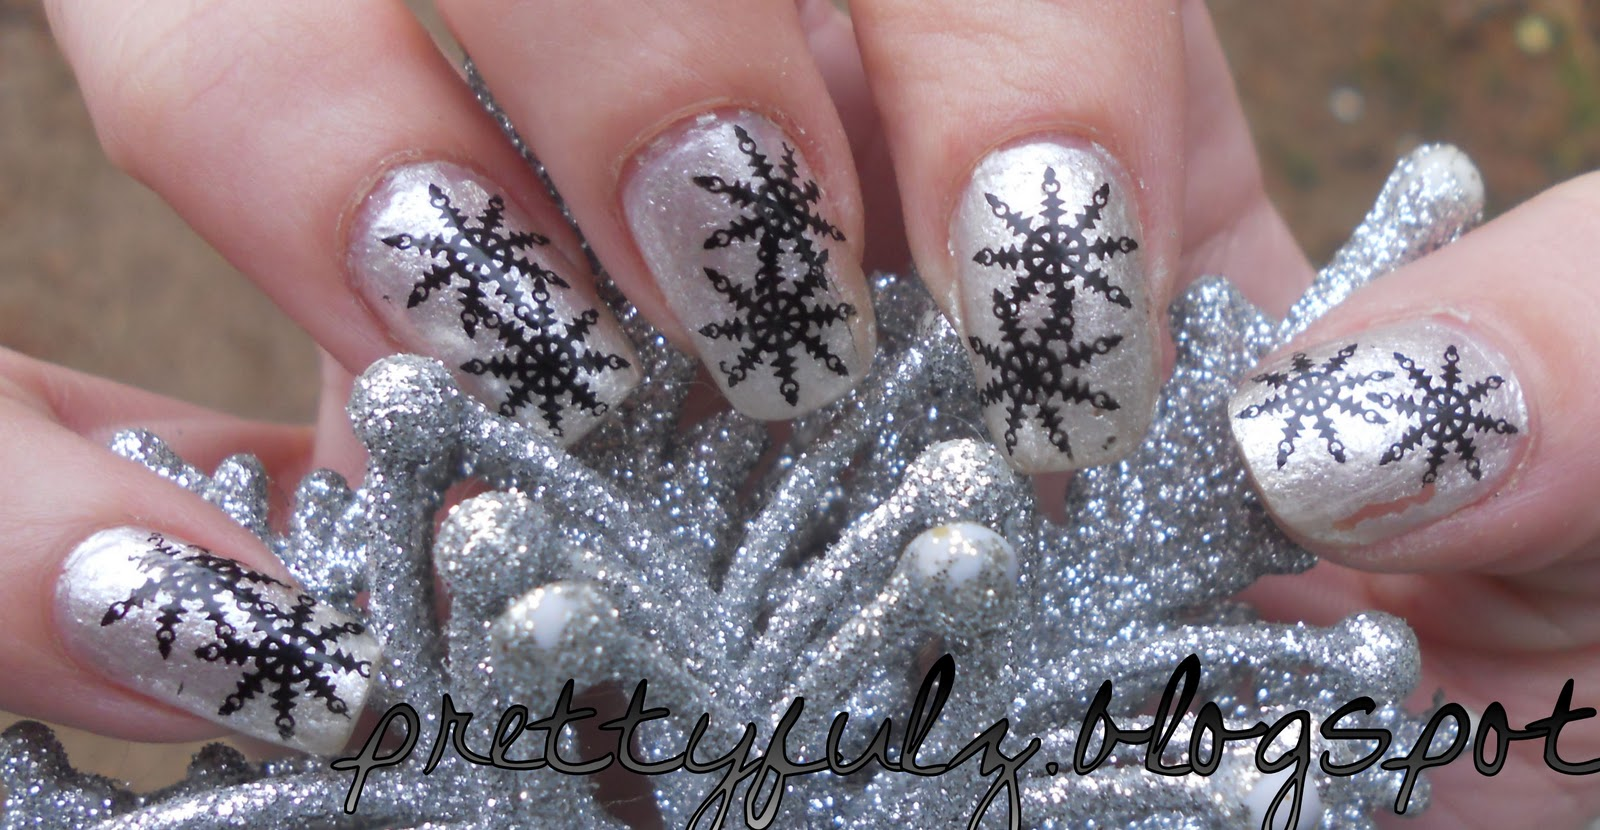 Prettyfulz: SNOWFLAKE NAIL ART DESIGN | Winter Nail Art Design